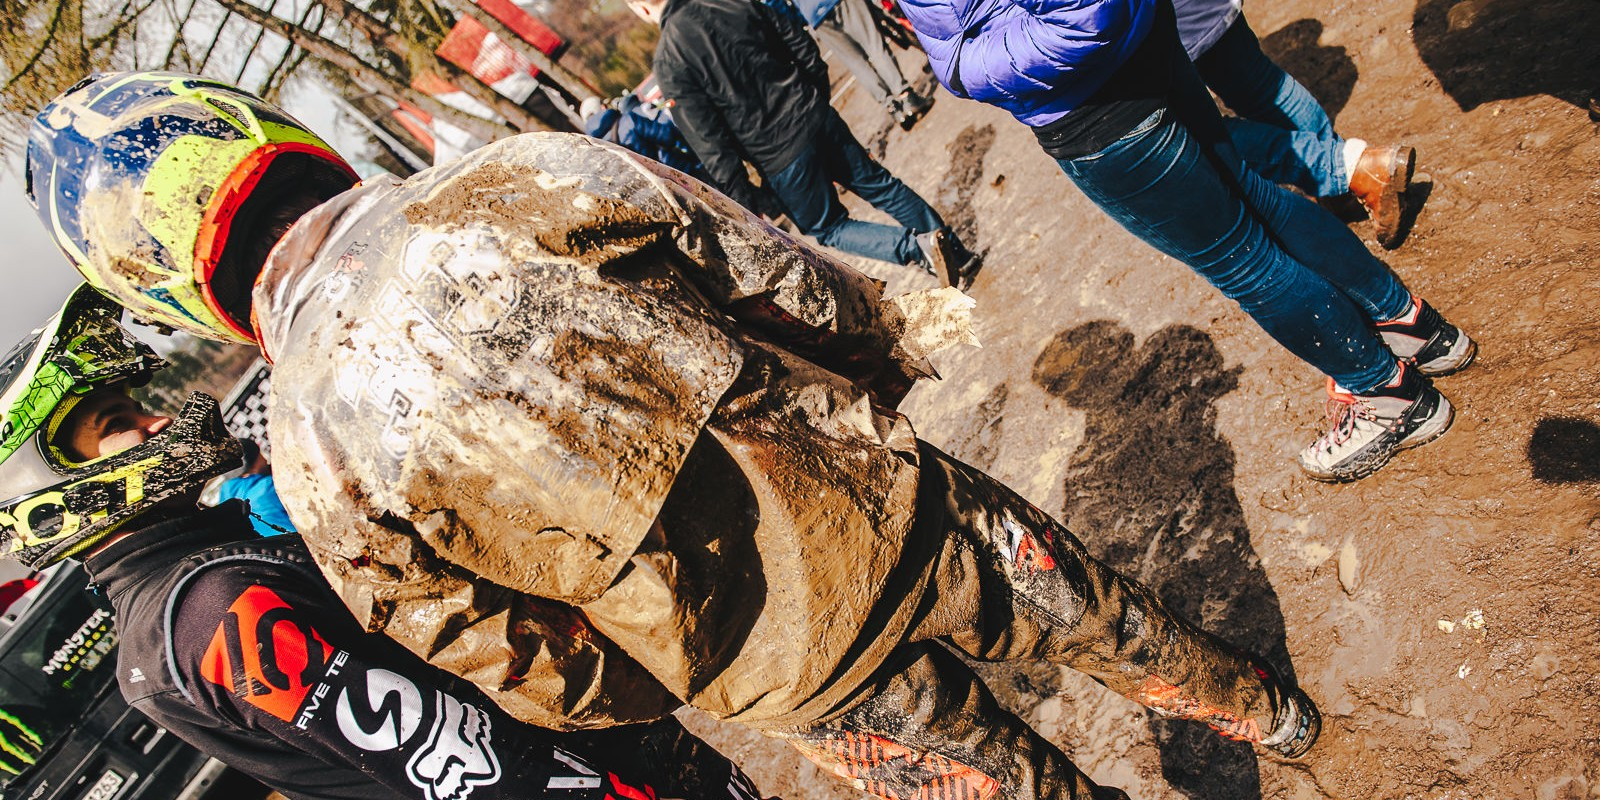 Diverse Downhill Contest 2017 Round 1 held in Wisła, Poland - ambient picture from final day